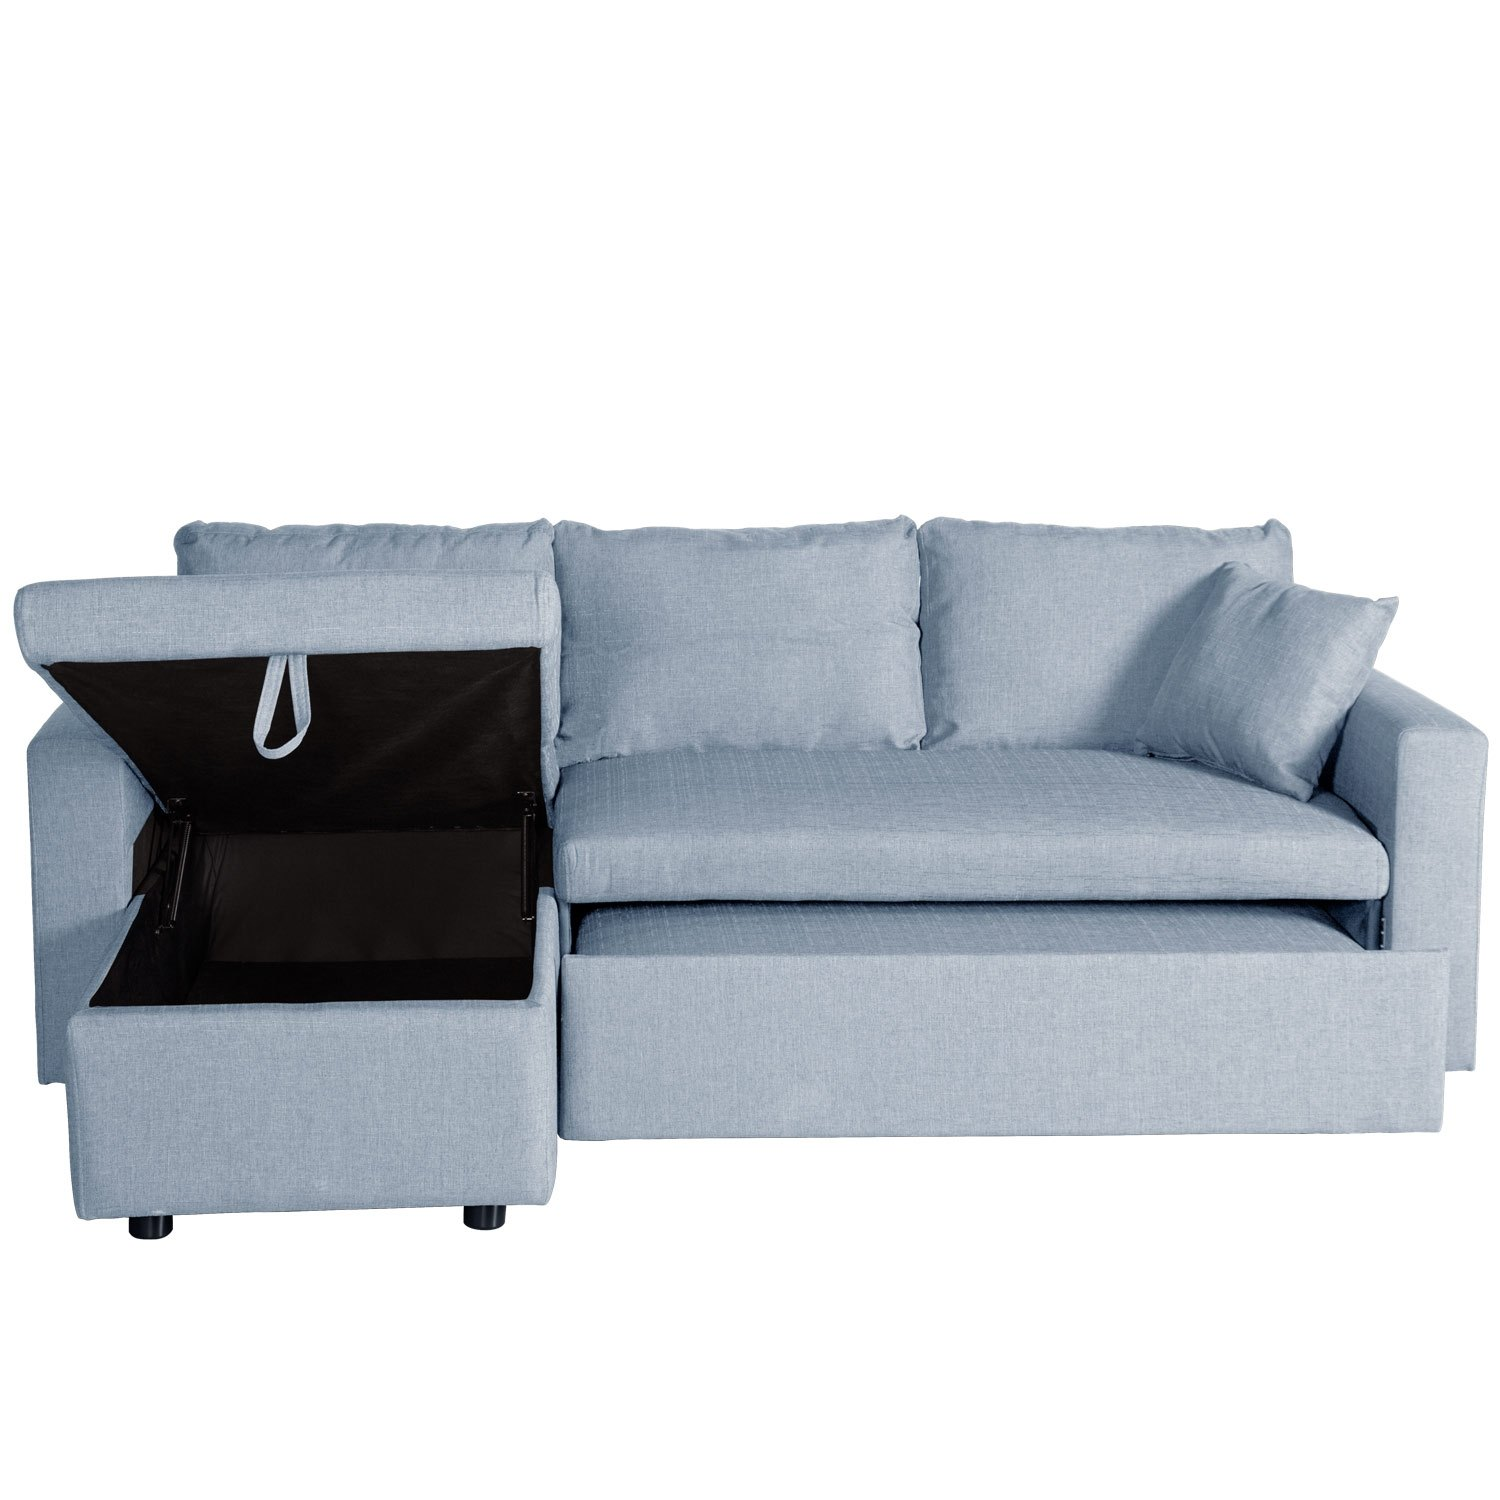 Compra online sof cama chaise longue adara barato for Chaise longue sofa cama